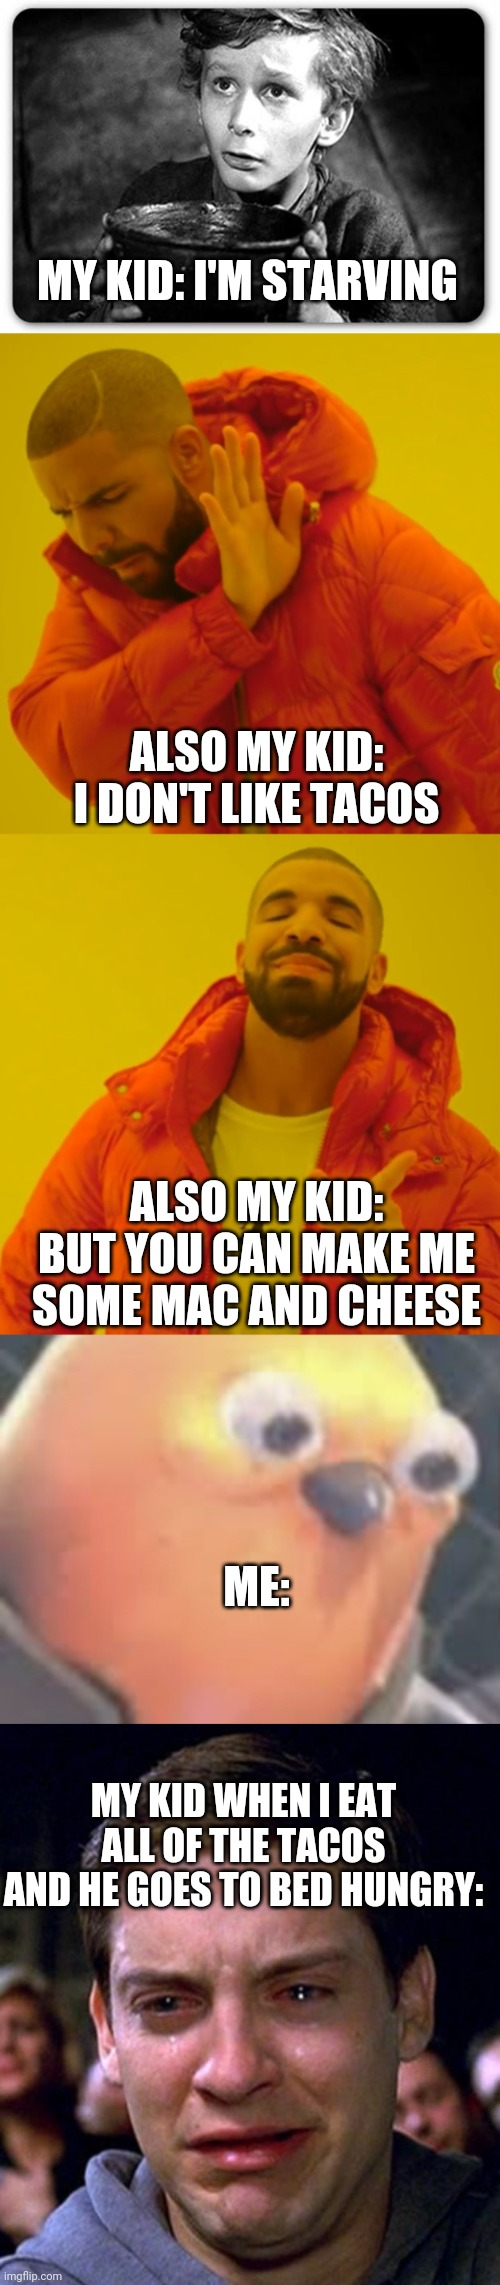 MY KID: I'M STARVING; ALSO MY KID: I DON'T LIKE TACOS; ALSO MY KID: BUT YOU CAN MAKE ME SOME MAC AND CHEESE; ME:; MY KID WHEN I EAT ALL OF THE TACOS AND HE GOES TO BED HUNGRY: | image tagged in crying peter parker,beggar,memes,drake hotline bling,listen here you little shit bird,memes | made w/ Imgflip meme maker